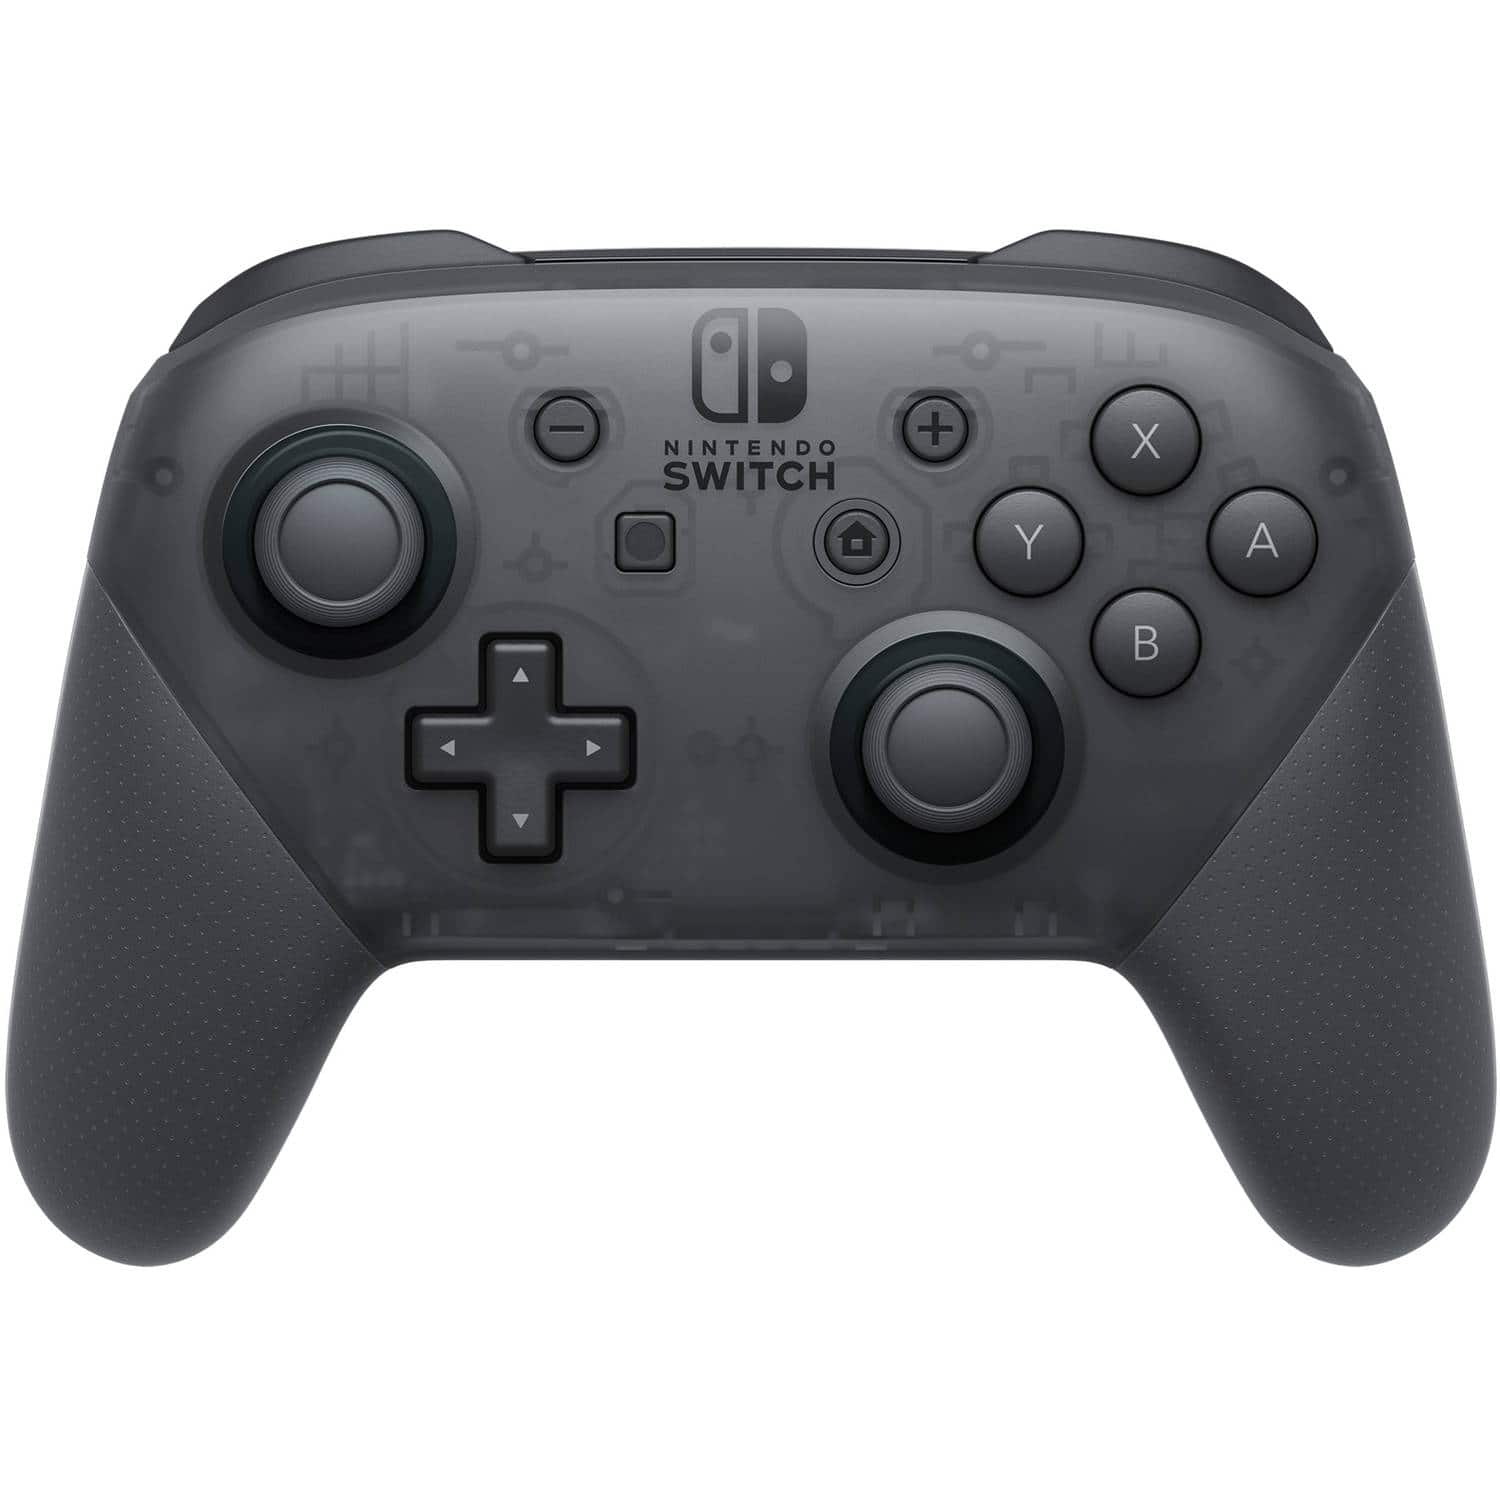 Nintendo Switch Pro Controller $56.99 or 5% less with REDCARD